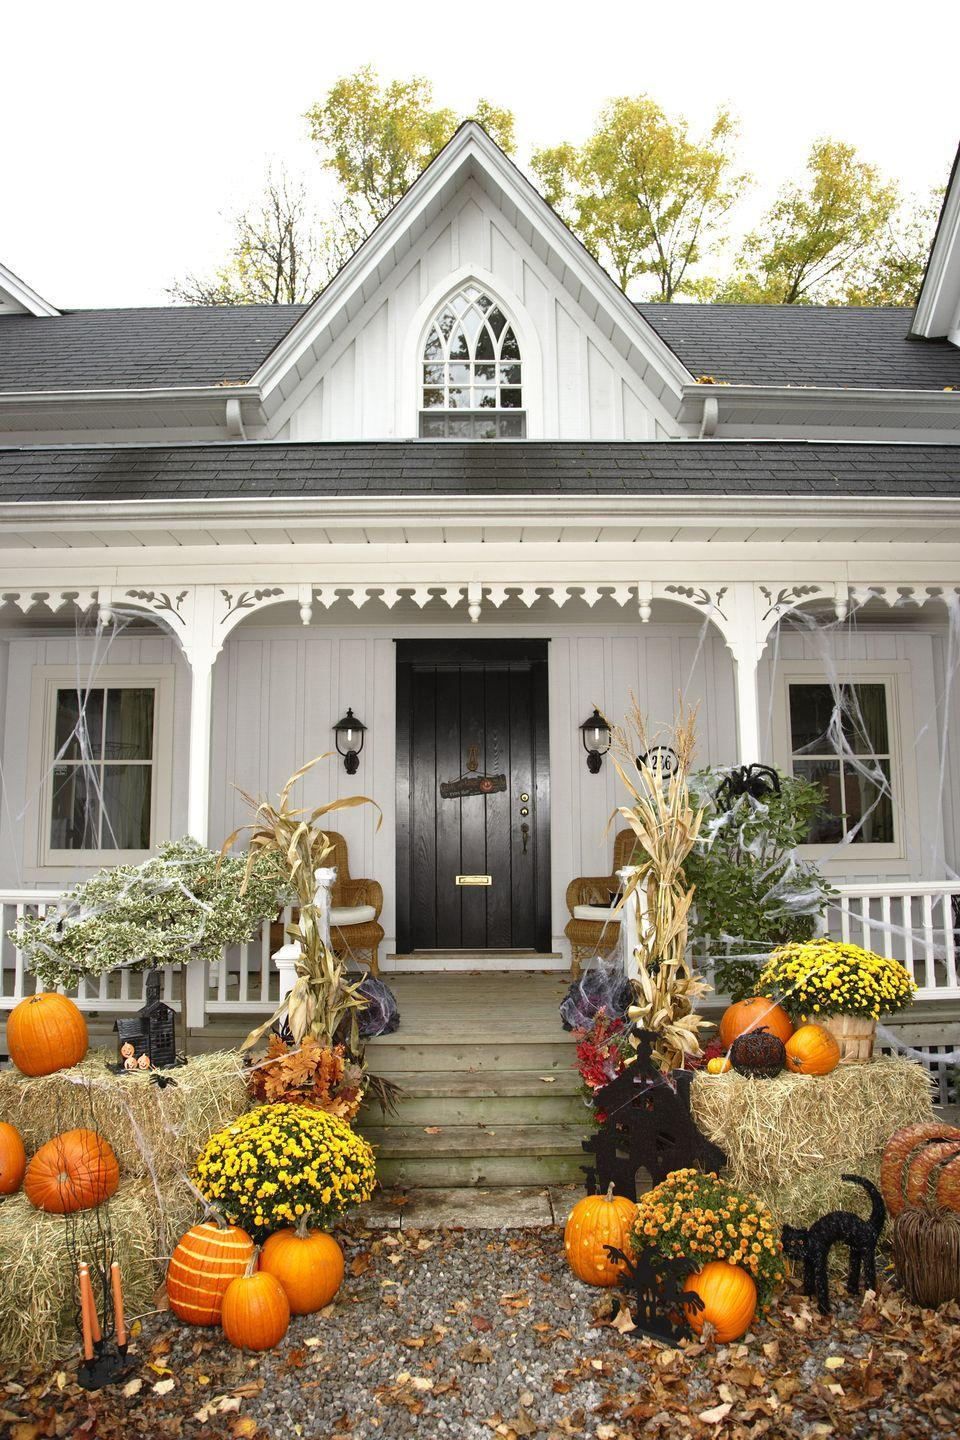 <p>Create a classic country Halloween vignette on your front porch by arranging hay bales, mums, pumpkins, and dried corn stalks around your steps. Fake spiderwebs add a not-too-scary touch. </p>